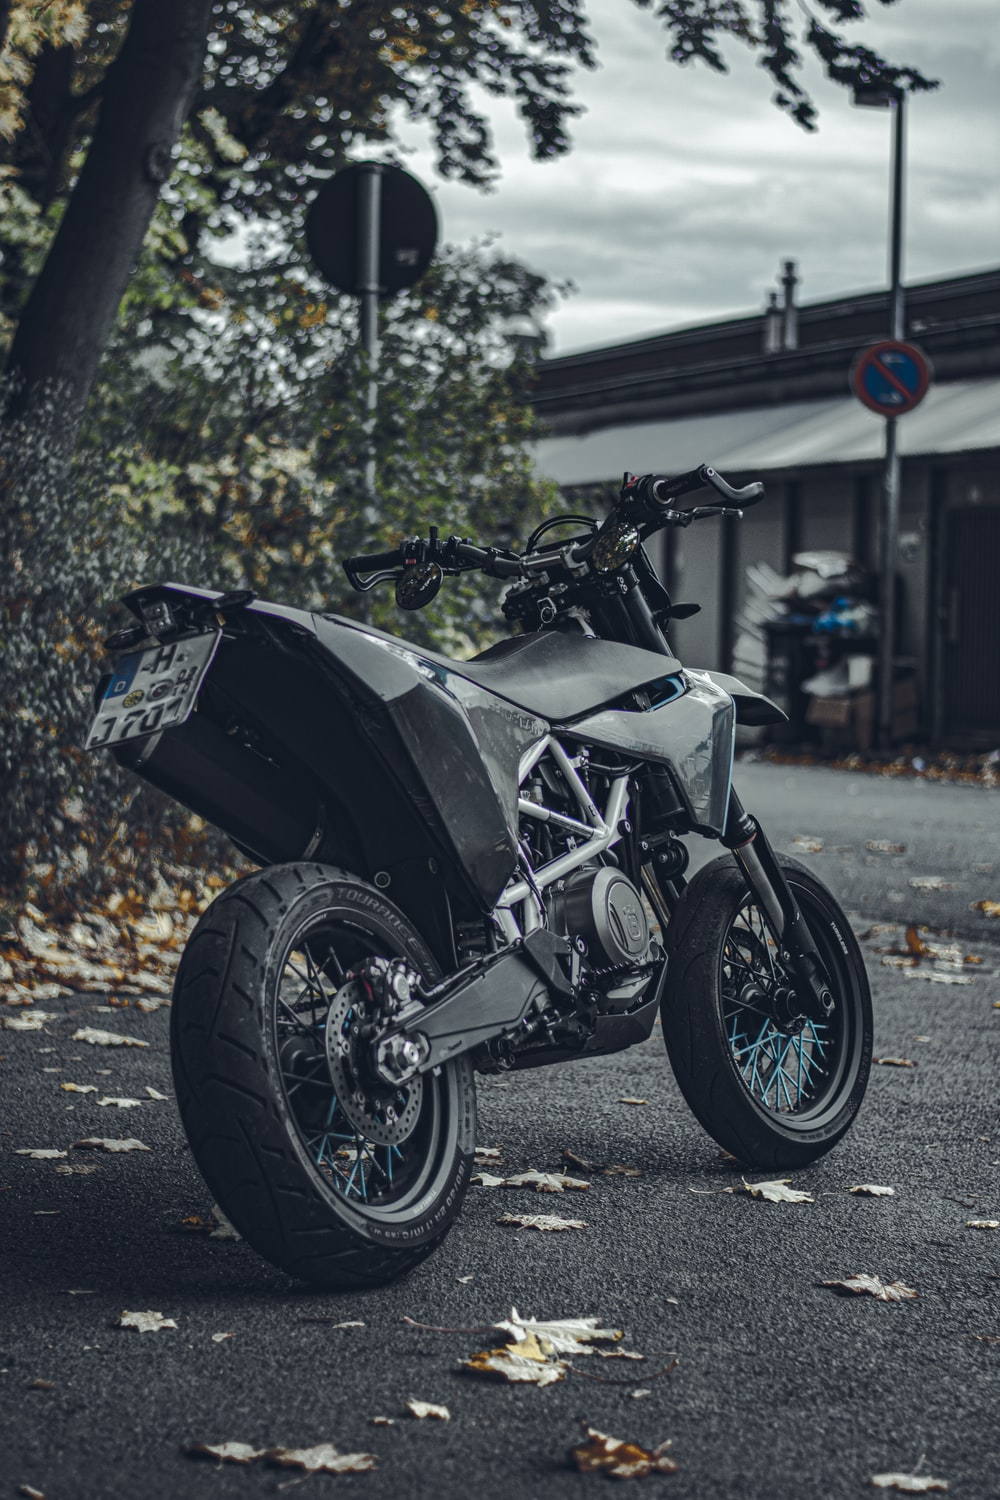 black and silver sports bike parked on the street during daytime